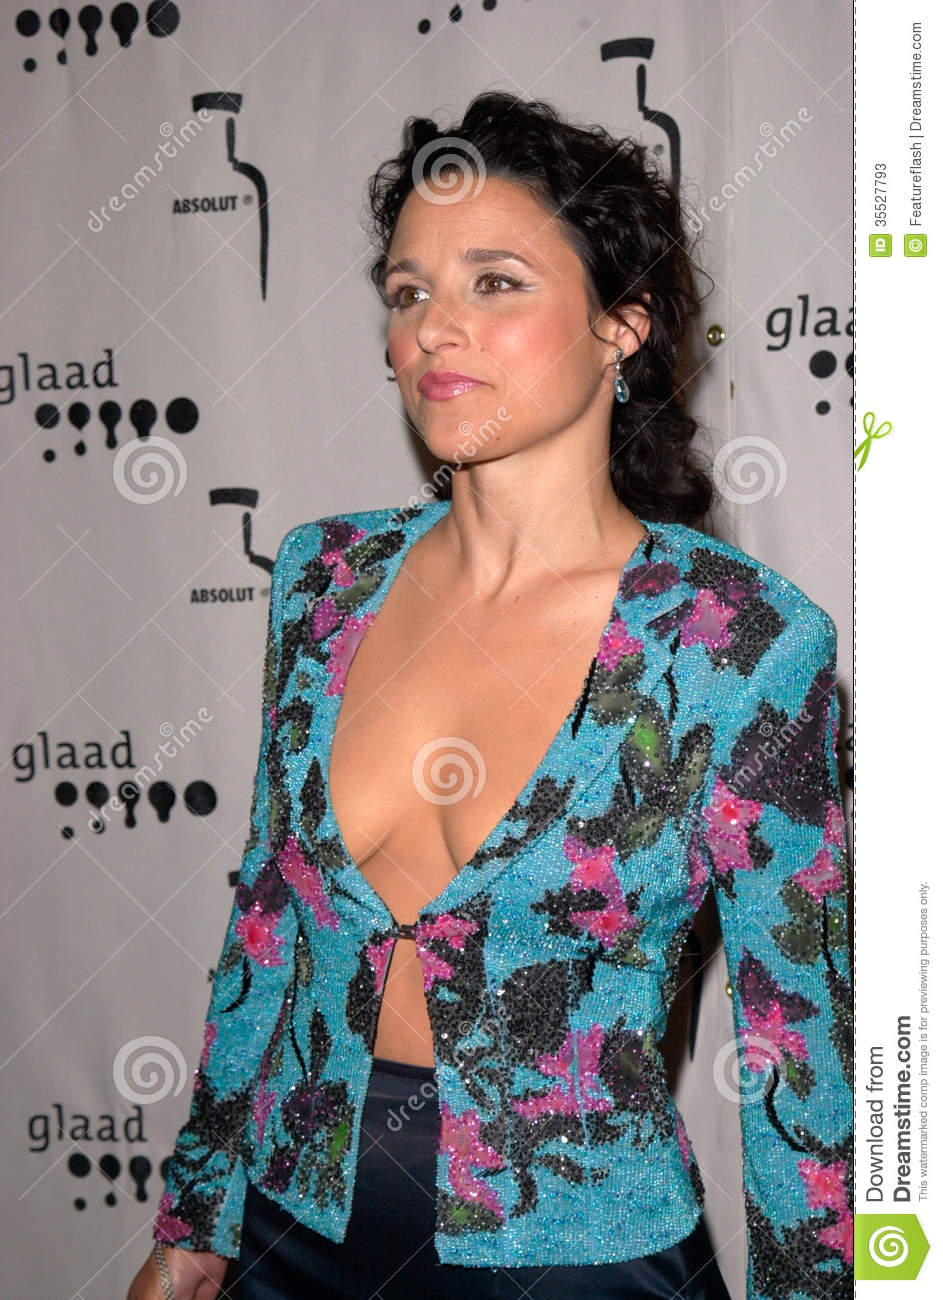 JULIA LOUIS-DREYFUS at the Gay & Lesbian Alliance Against Defamation ...: https://www.dreamstime.com/stock-photos-julia-louis-dreyfus-apr...